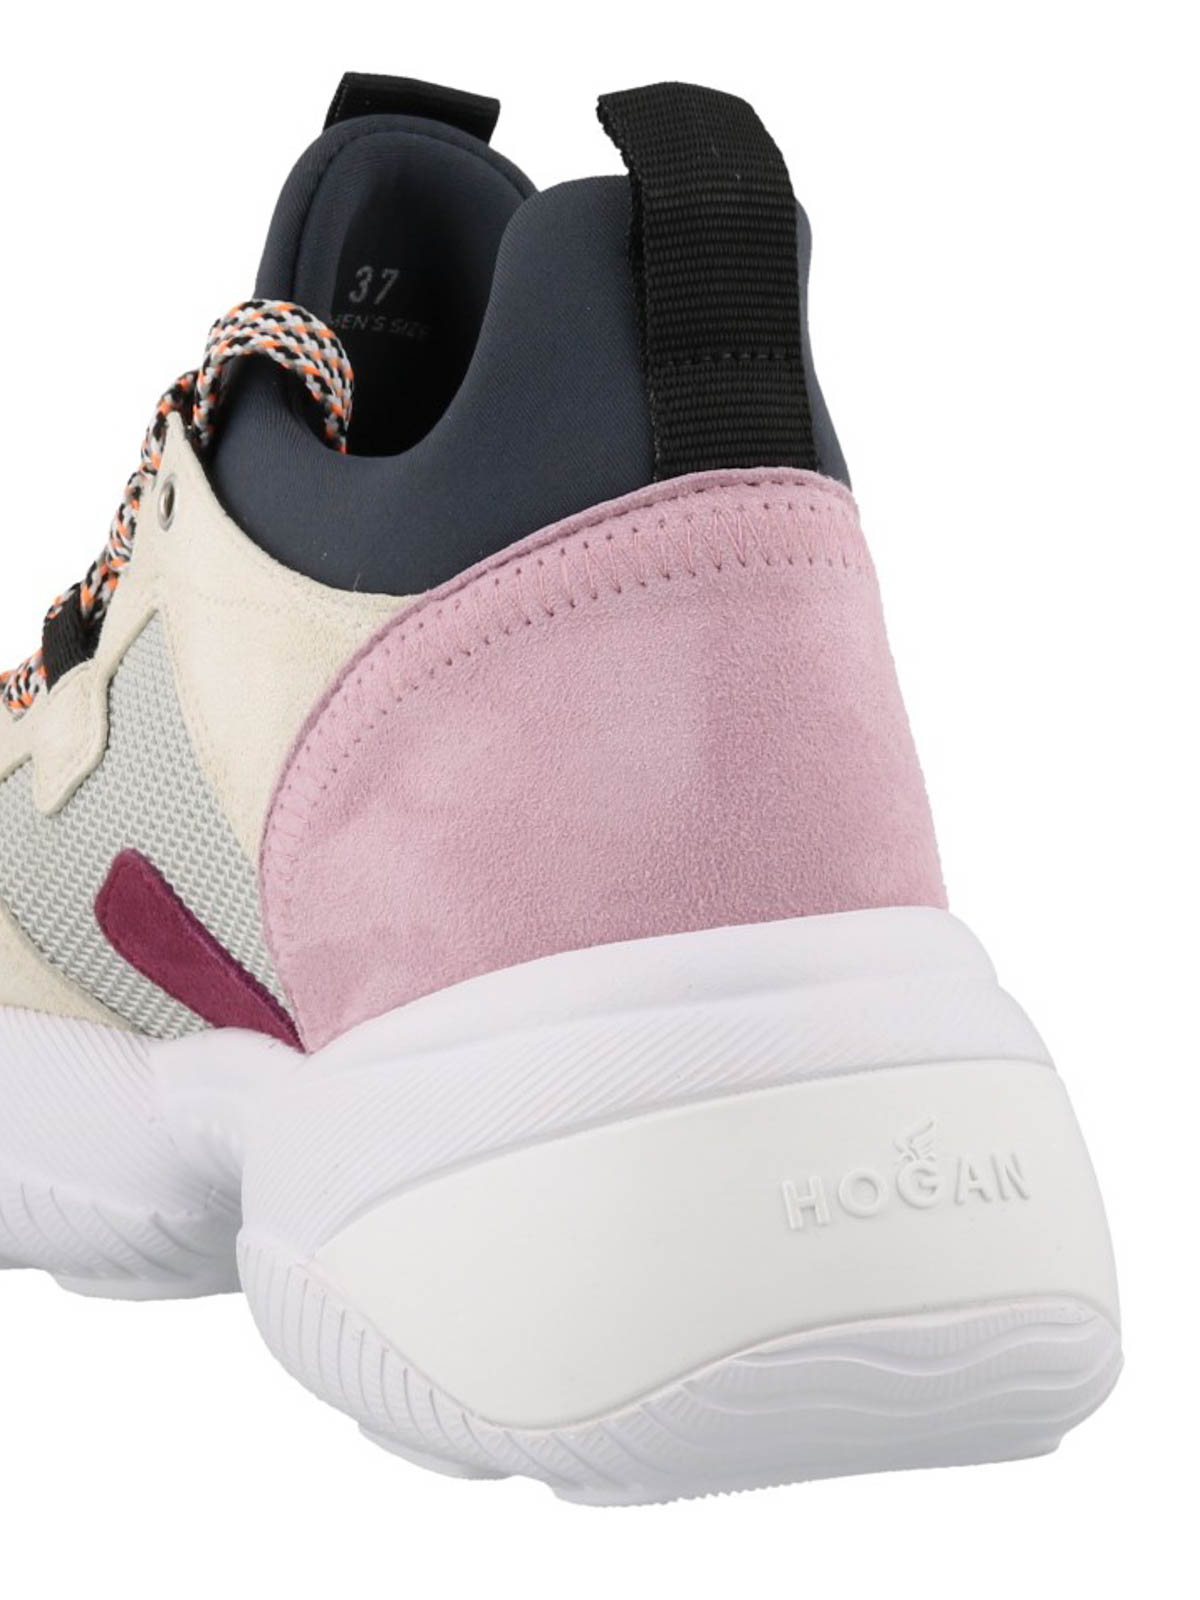 Hogan - Interaction sneakers - trainers - GYW4870CH20ML40QR8 ...